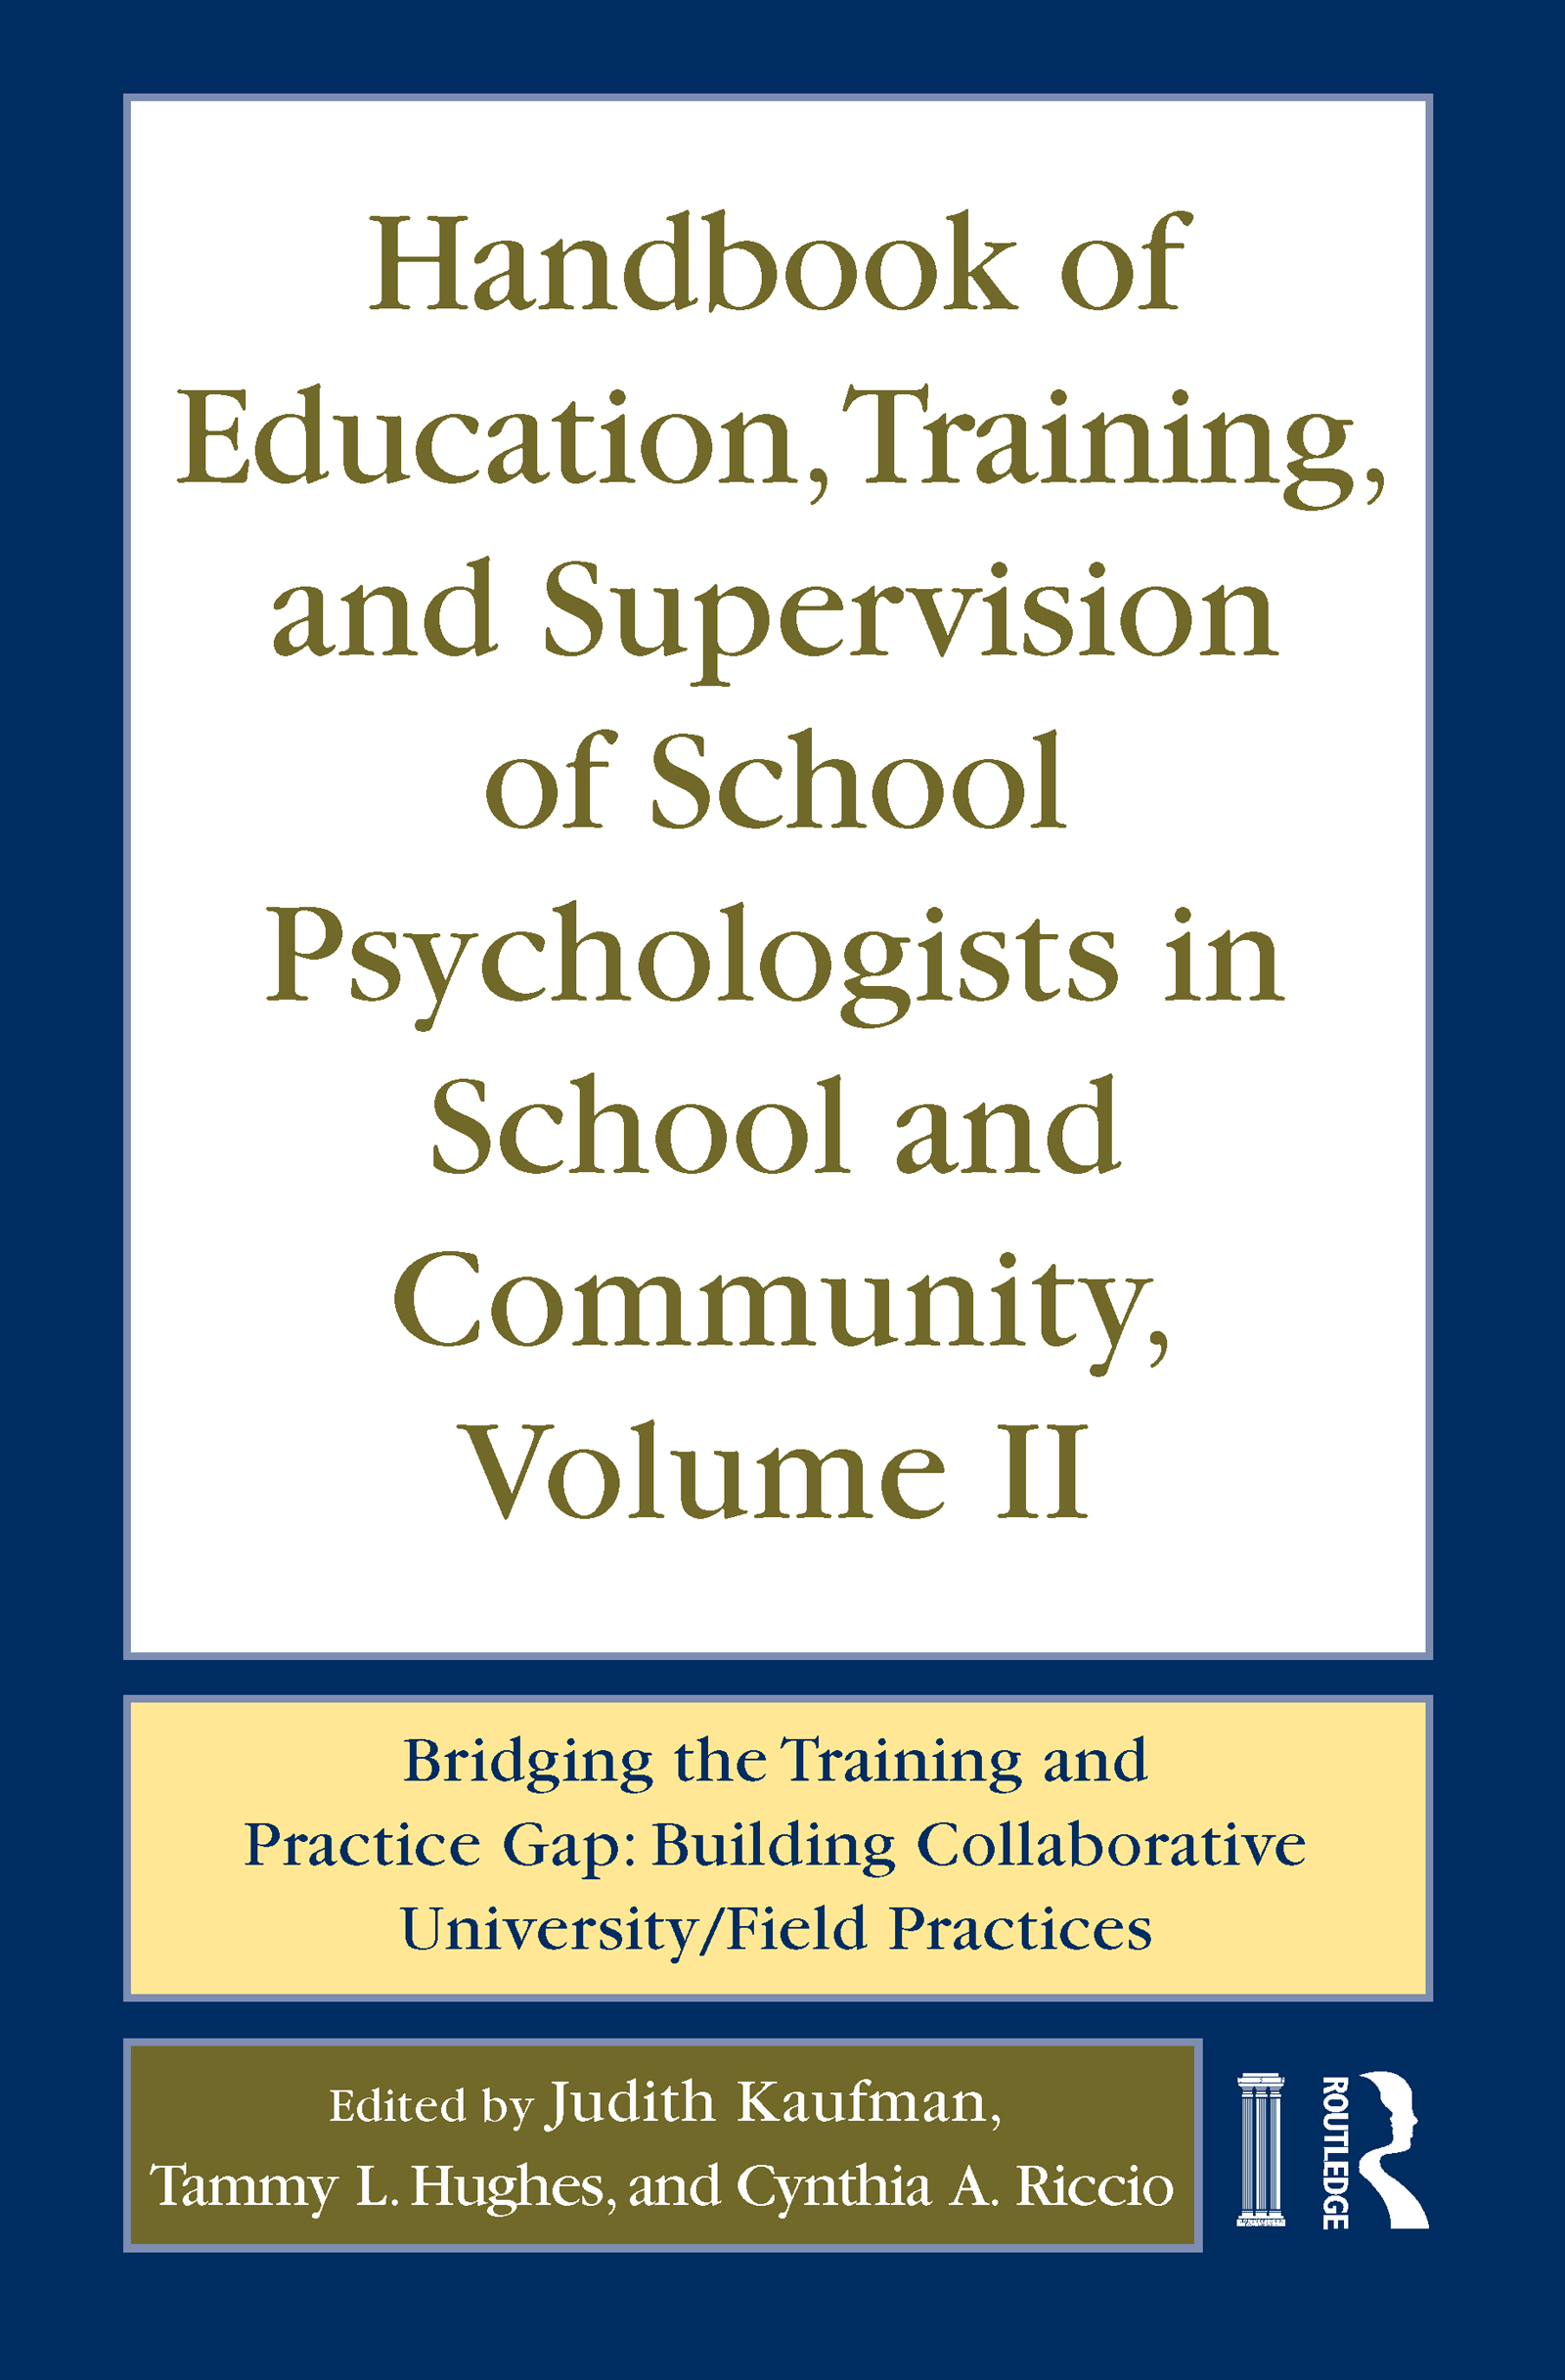 Handbook of Education, Training, and Supervision of School Psychologists in School and Community, Volume II: Bridging the Training and Practice Gap: Building Collaborative University/Field Practices (Hardback) book cover